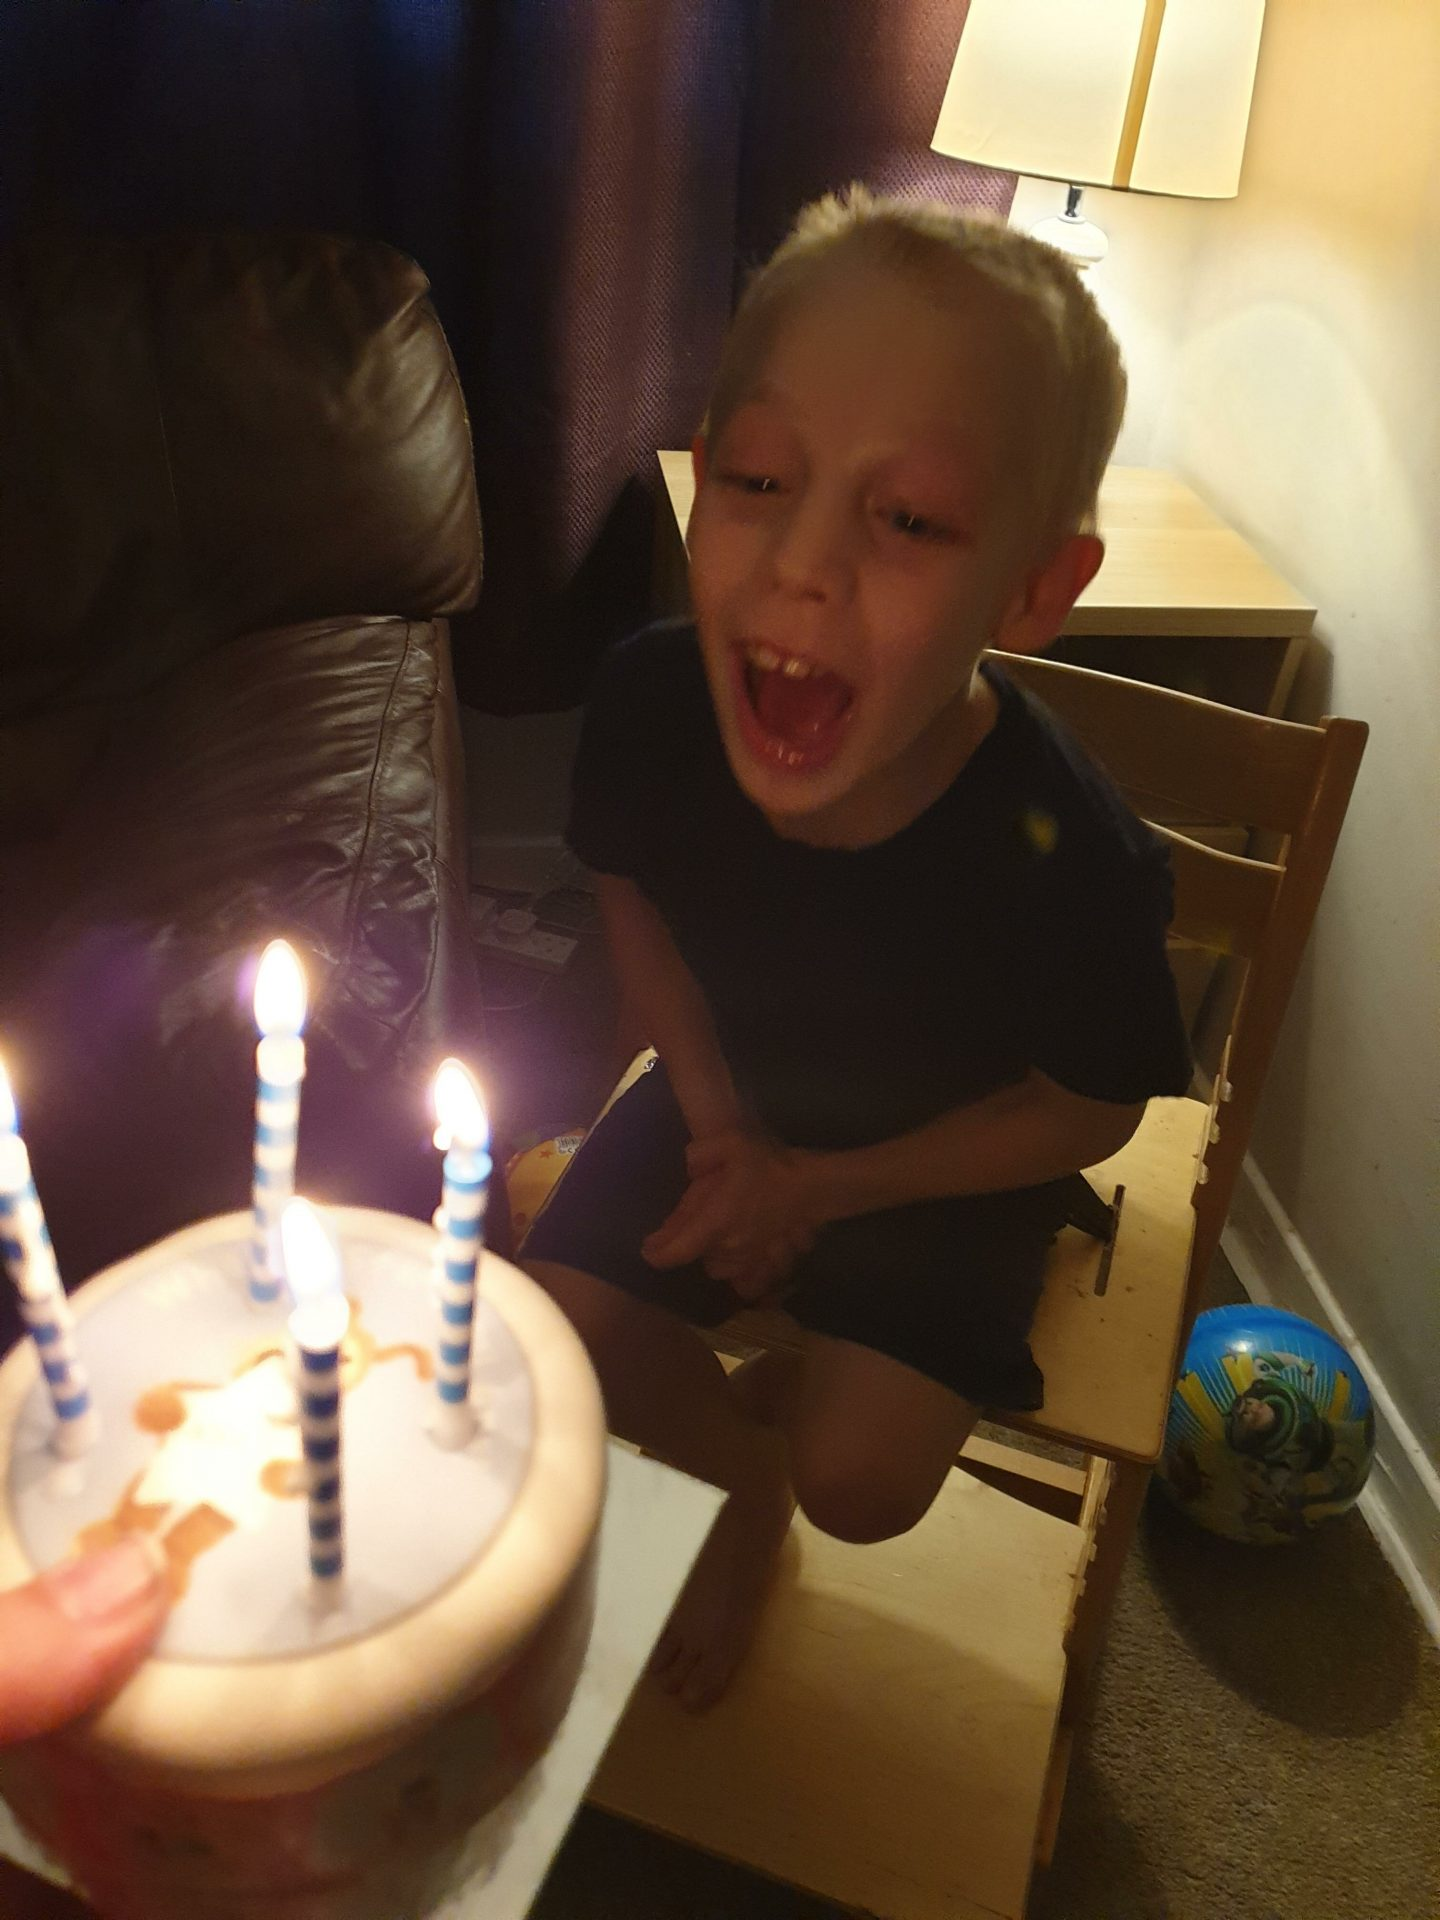 Blowing out his candles with enthusiasm